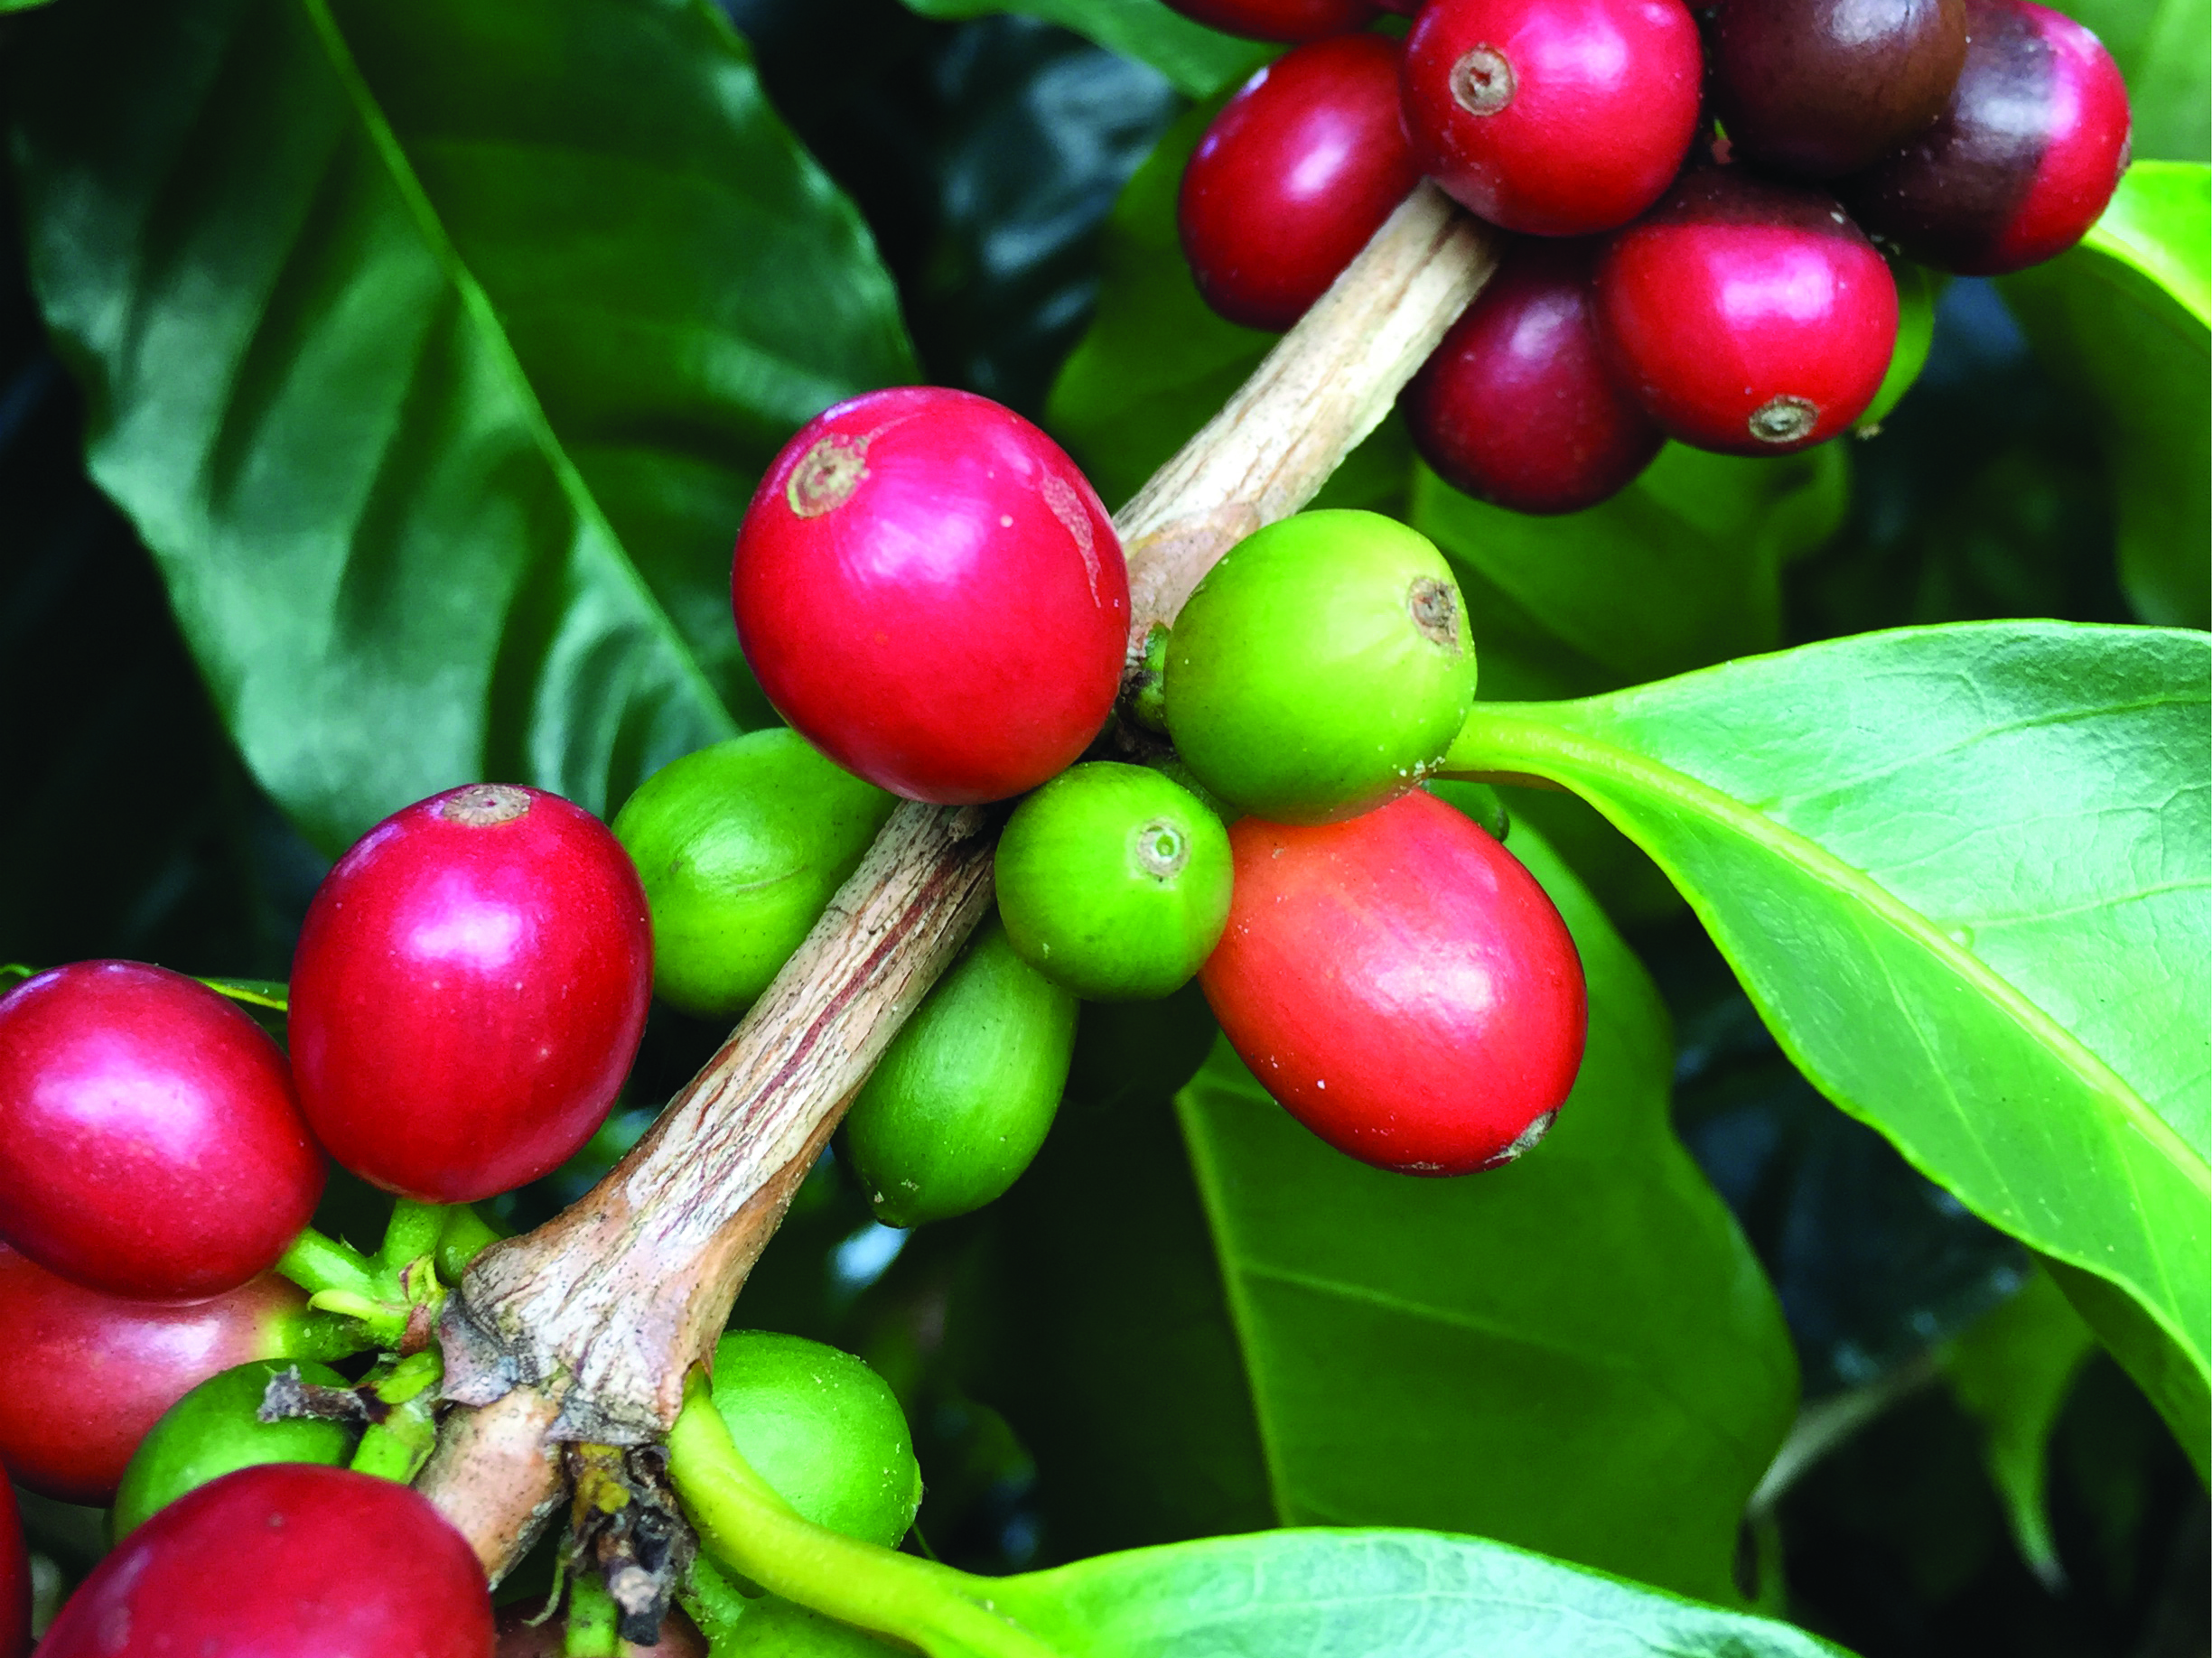 Cherries, the fruit of the coffee plant, ripen at Finca Carolina, a farm in Chinchina, Colombia.